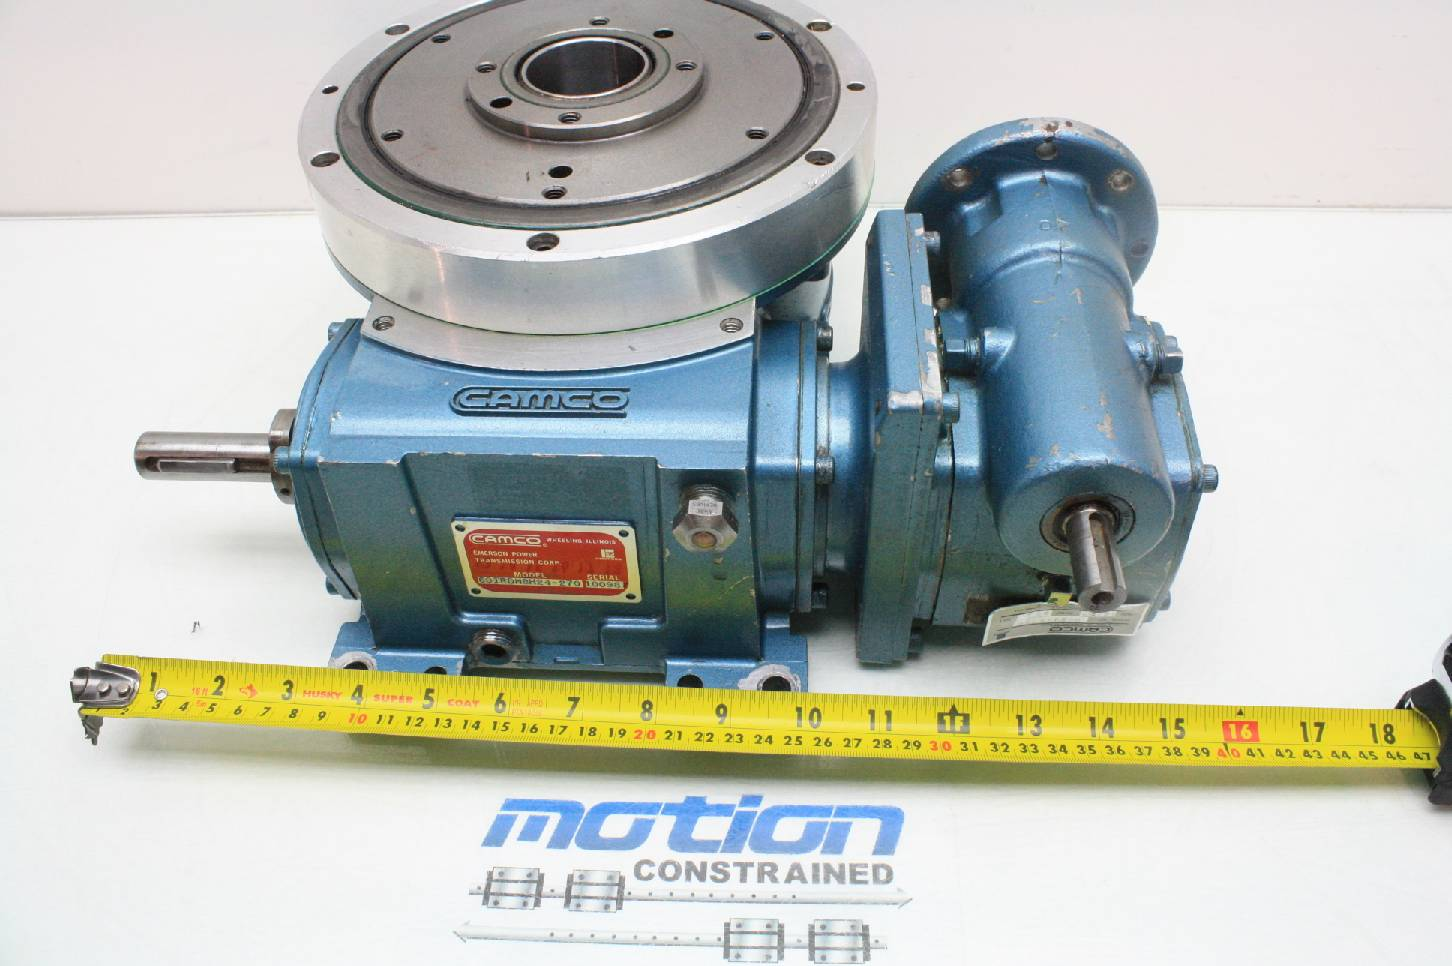 Camco 601rdm8h24 270 Rotary Indexer 8 Stops Gear Reducer